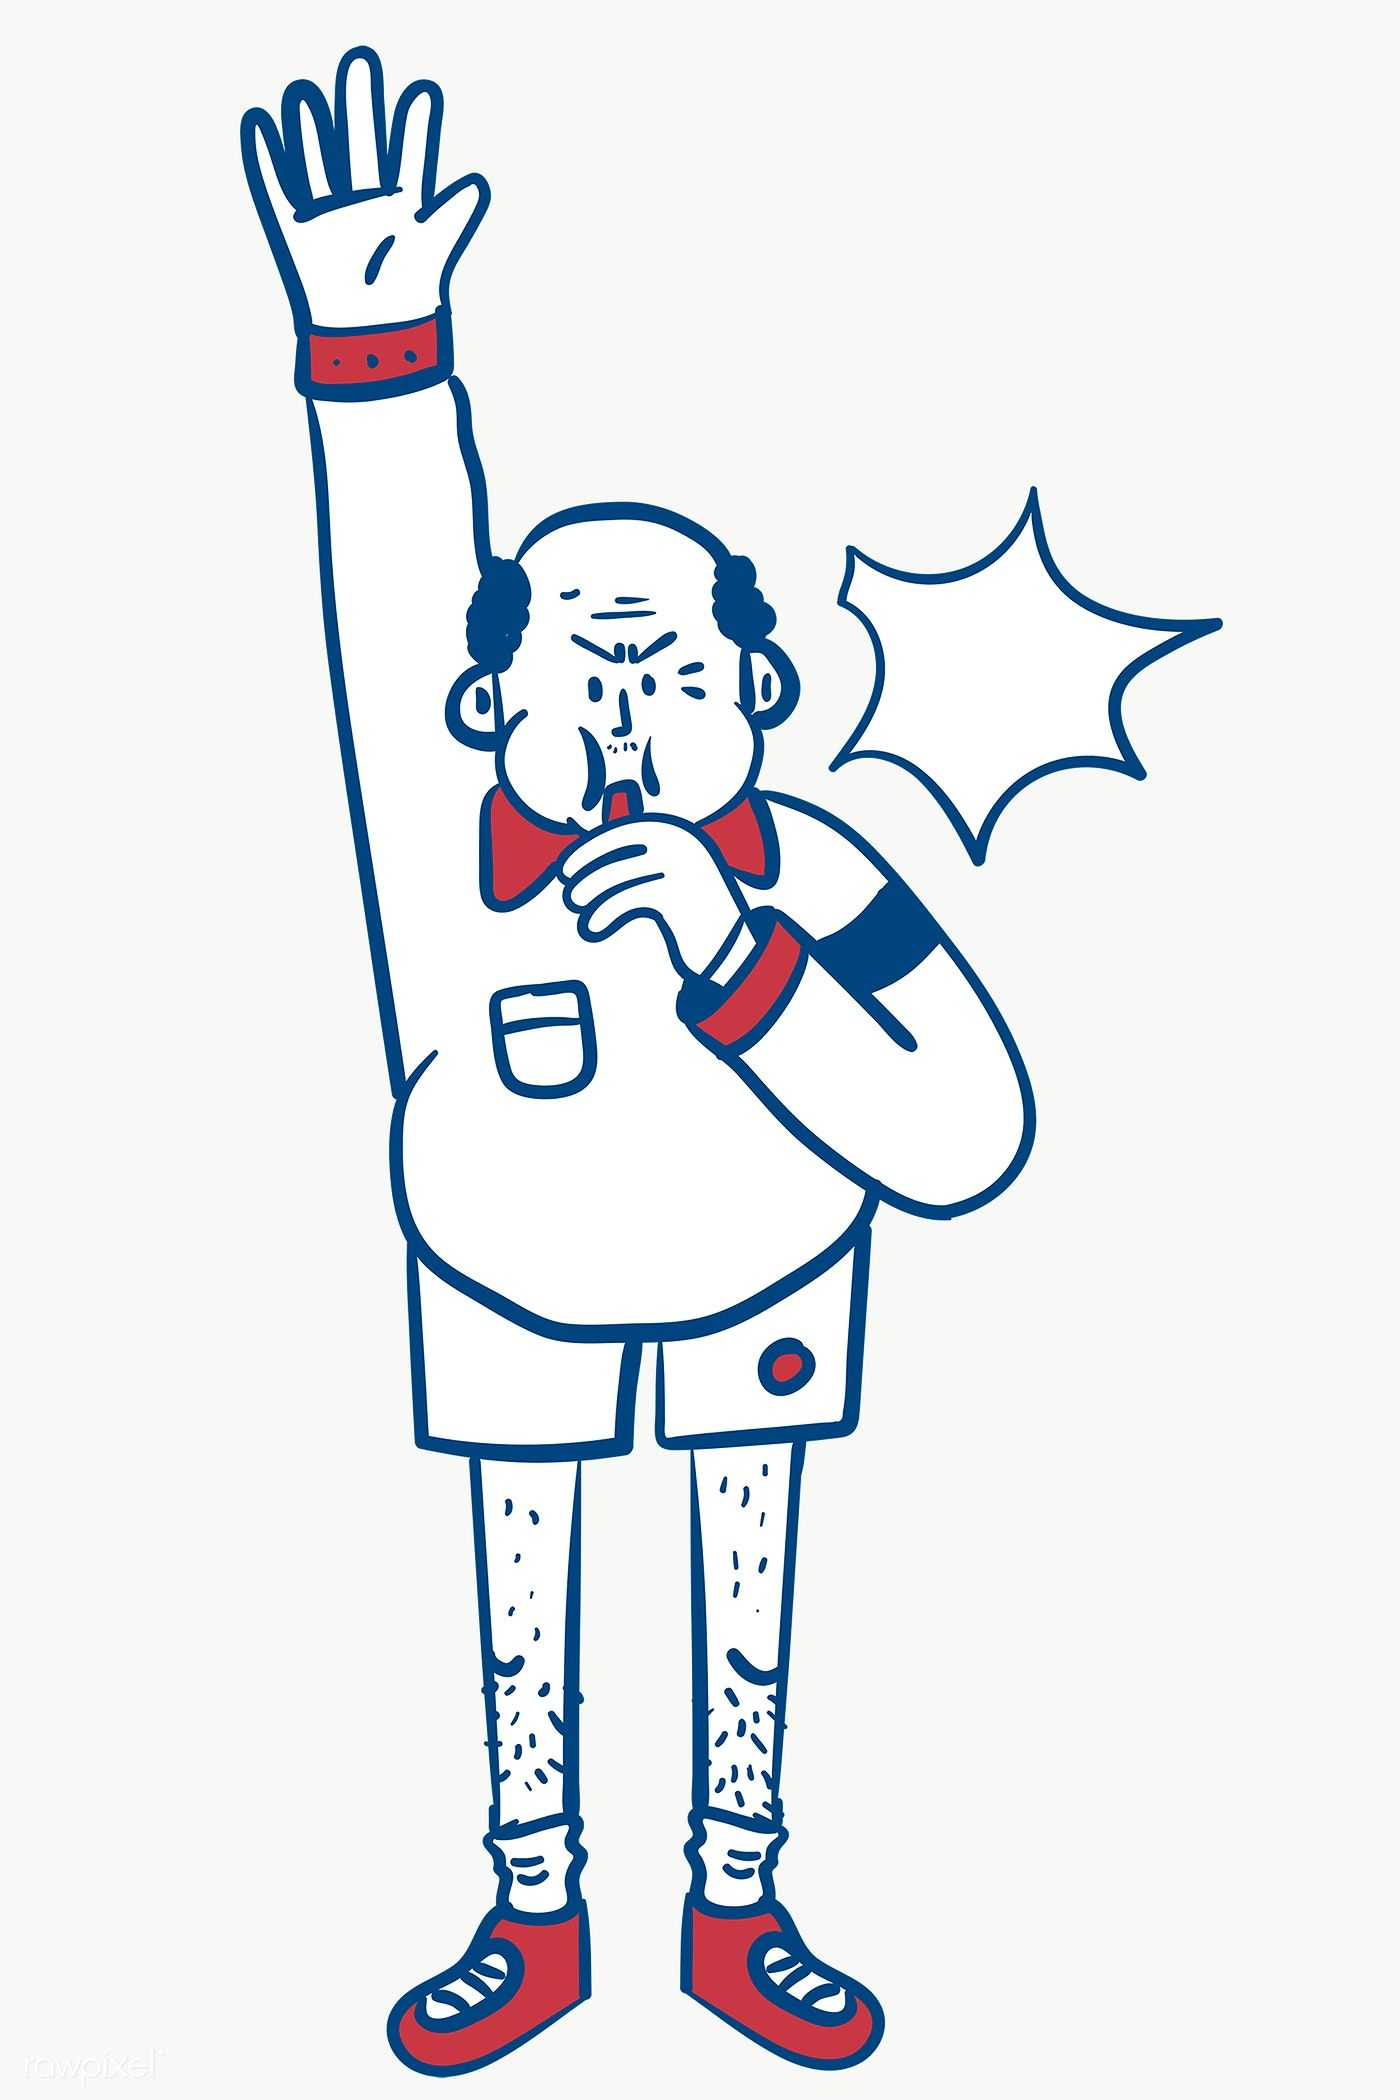 Referee blowing a whistle transparent png free image by